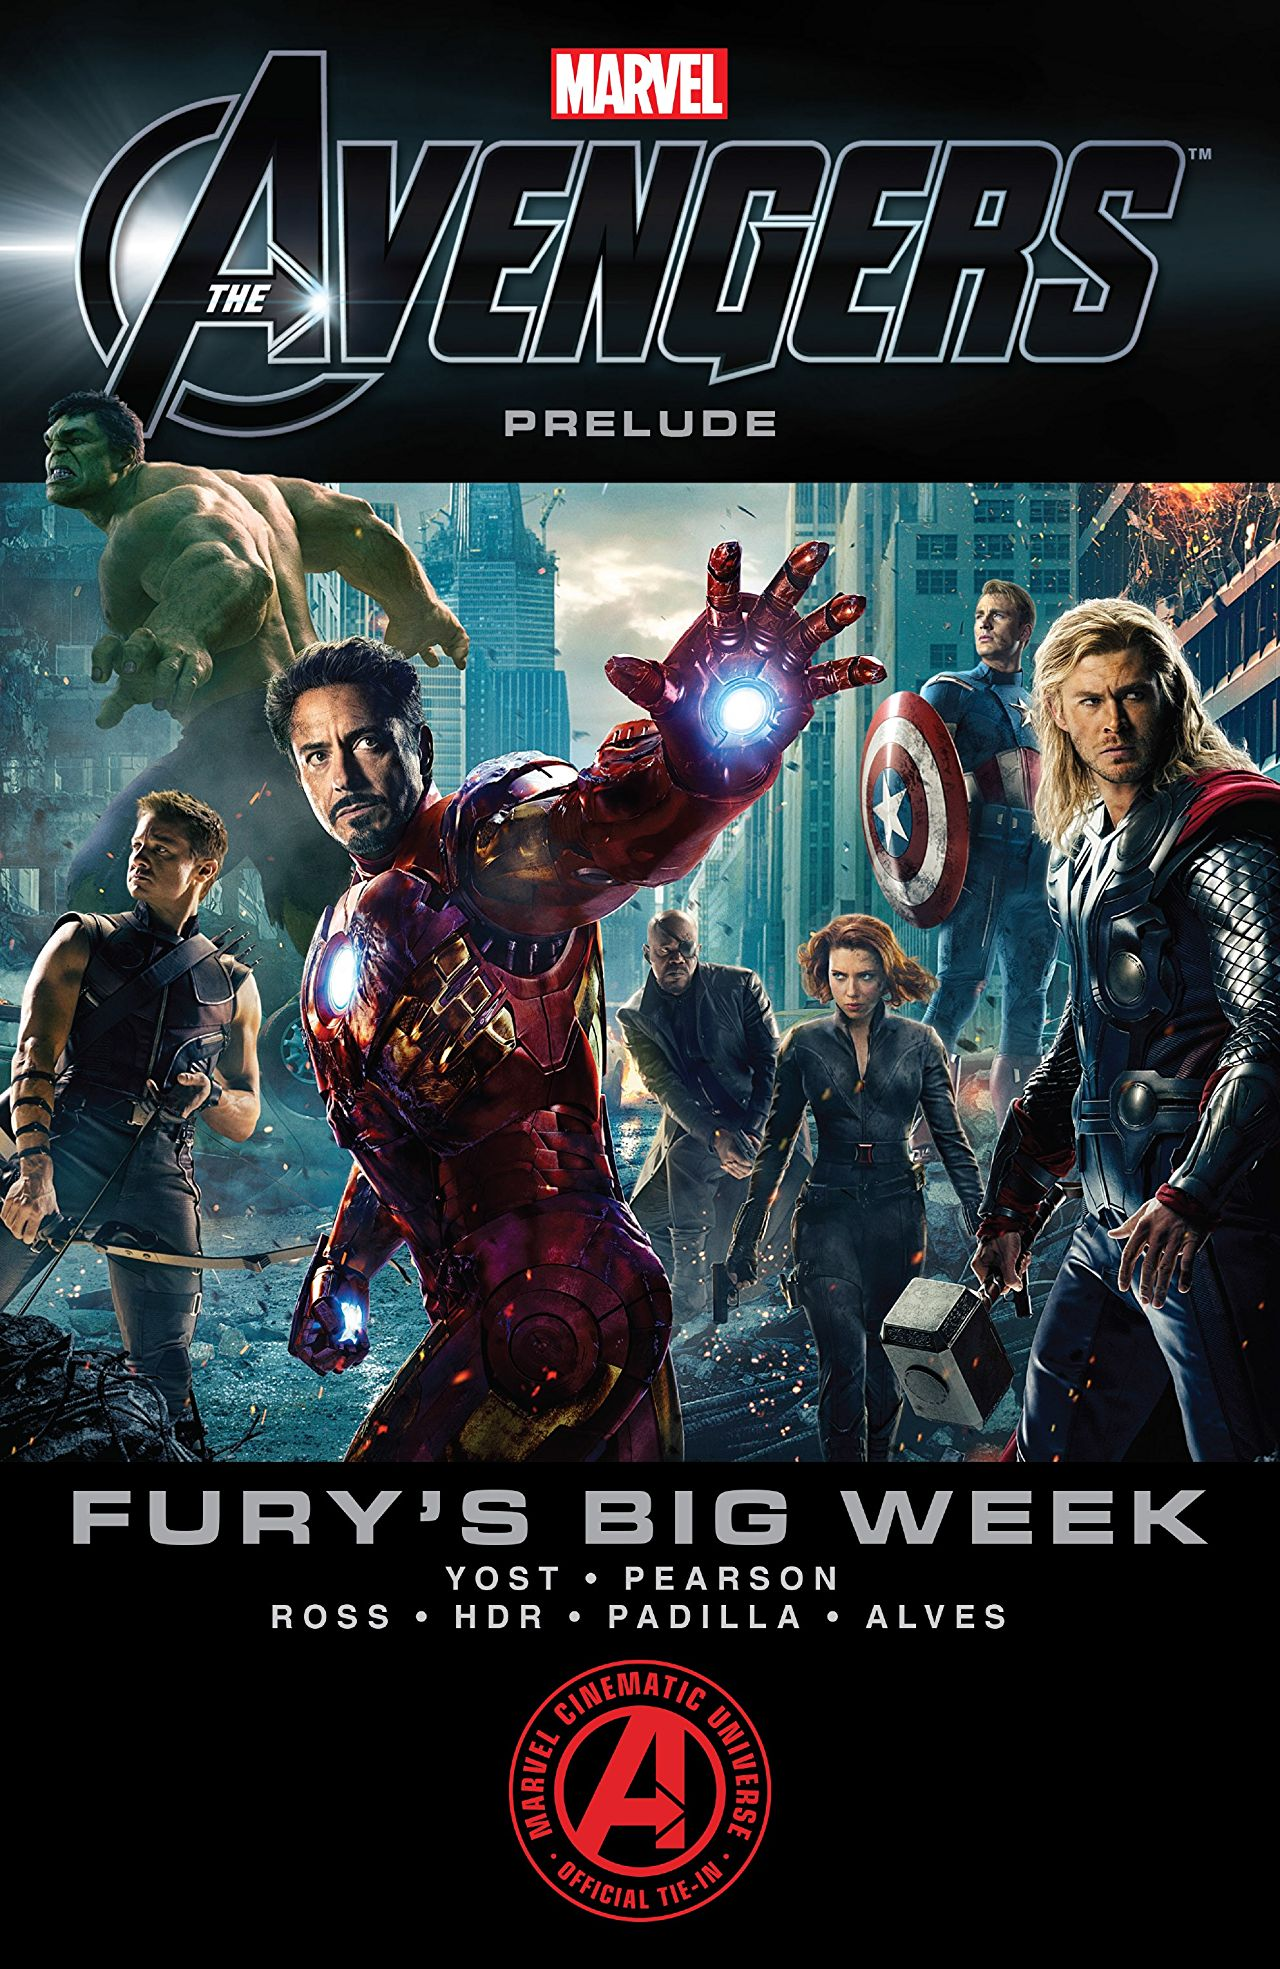 Marvel's The Avengers Prelude: Fury's Big Week (Trade Paperback)